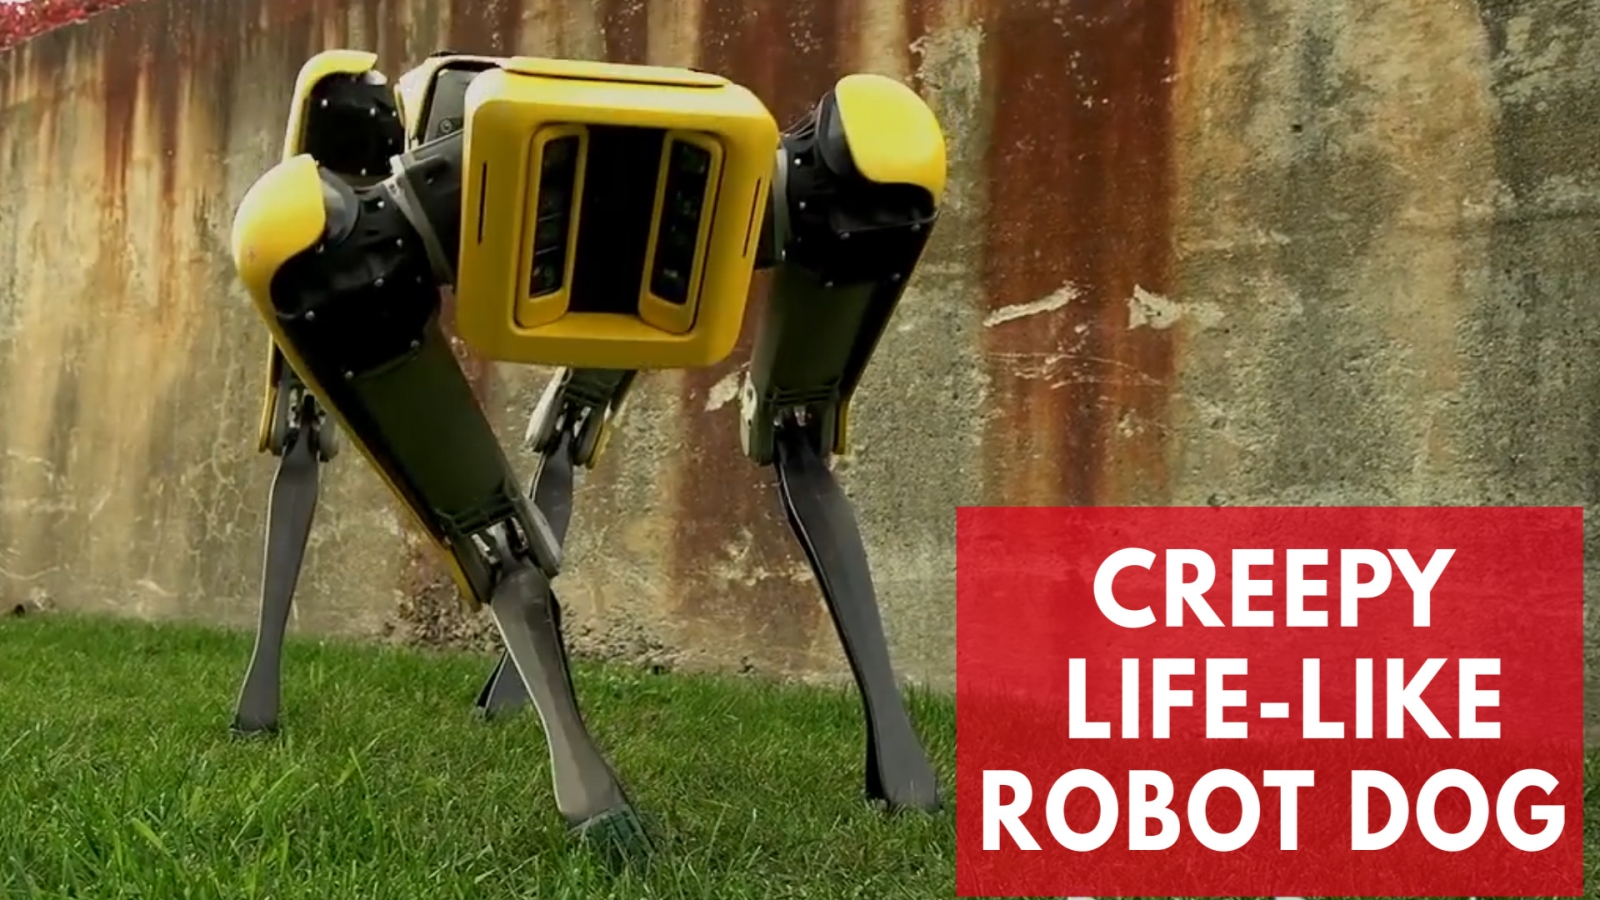 this-new-robot-dog-from-boston-dynamics-is-creepily-lifelike